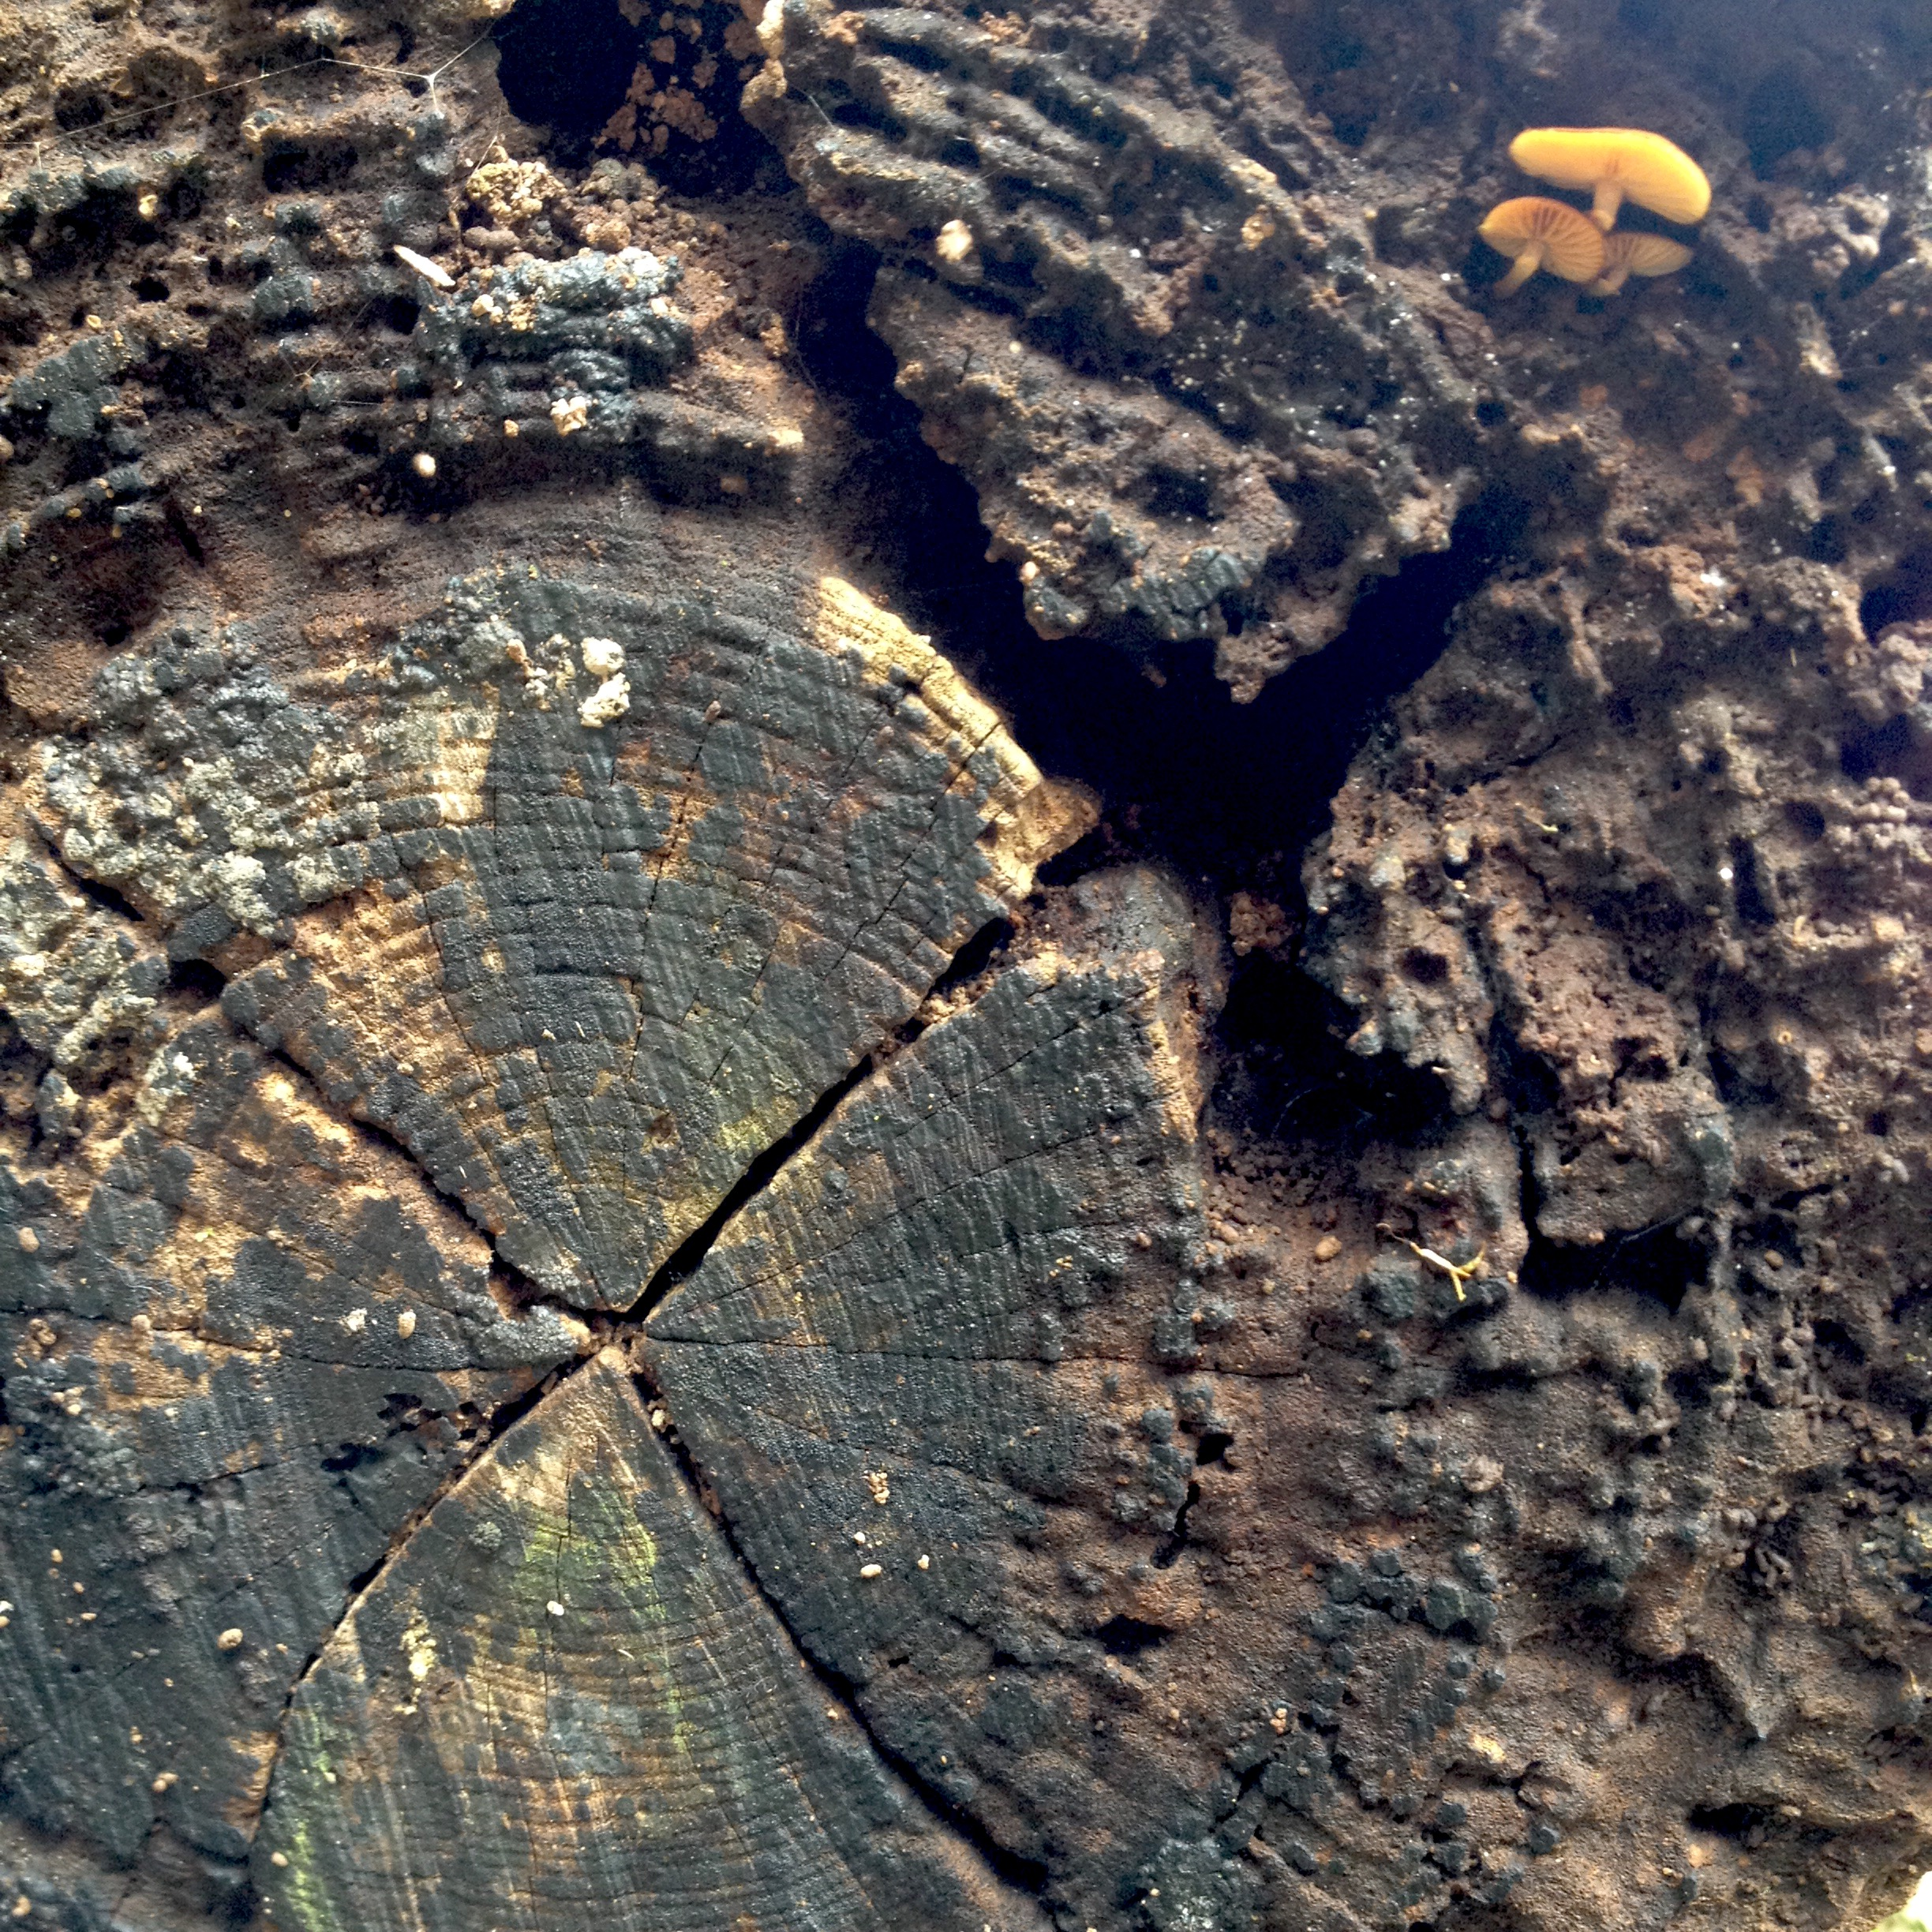 highly worn and pitted end of a log with a small orange mushroom growing out of it and a split in the shape of an X